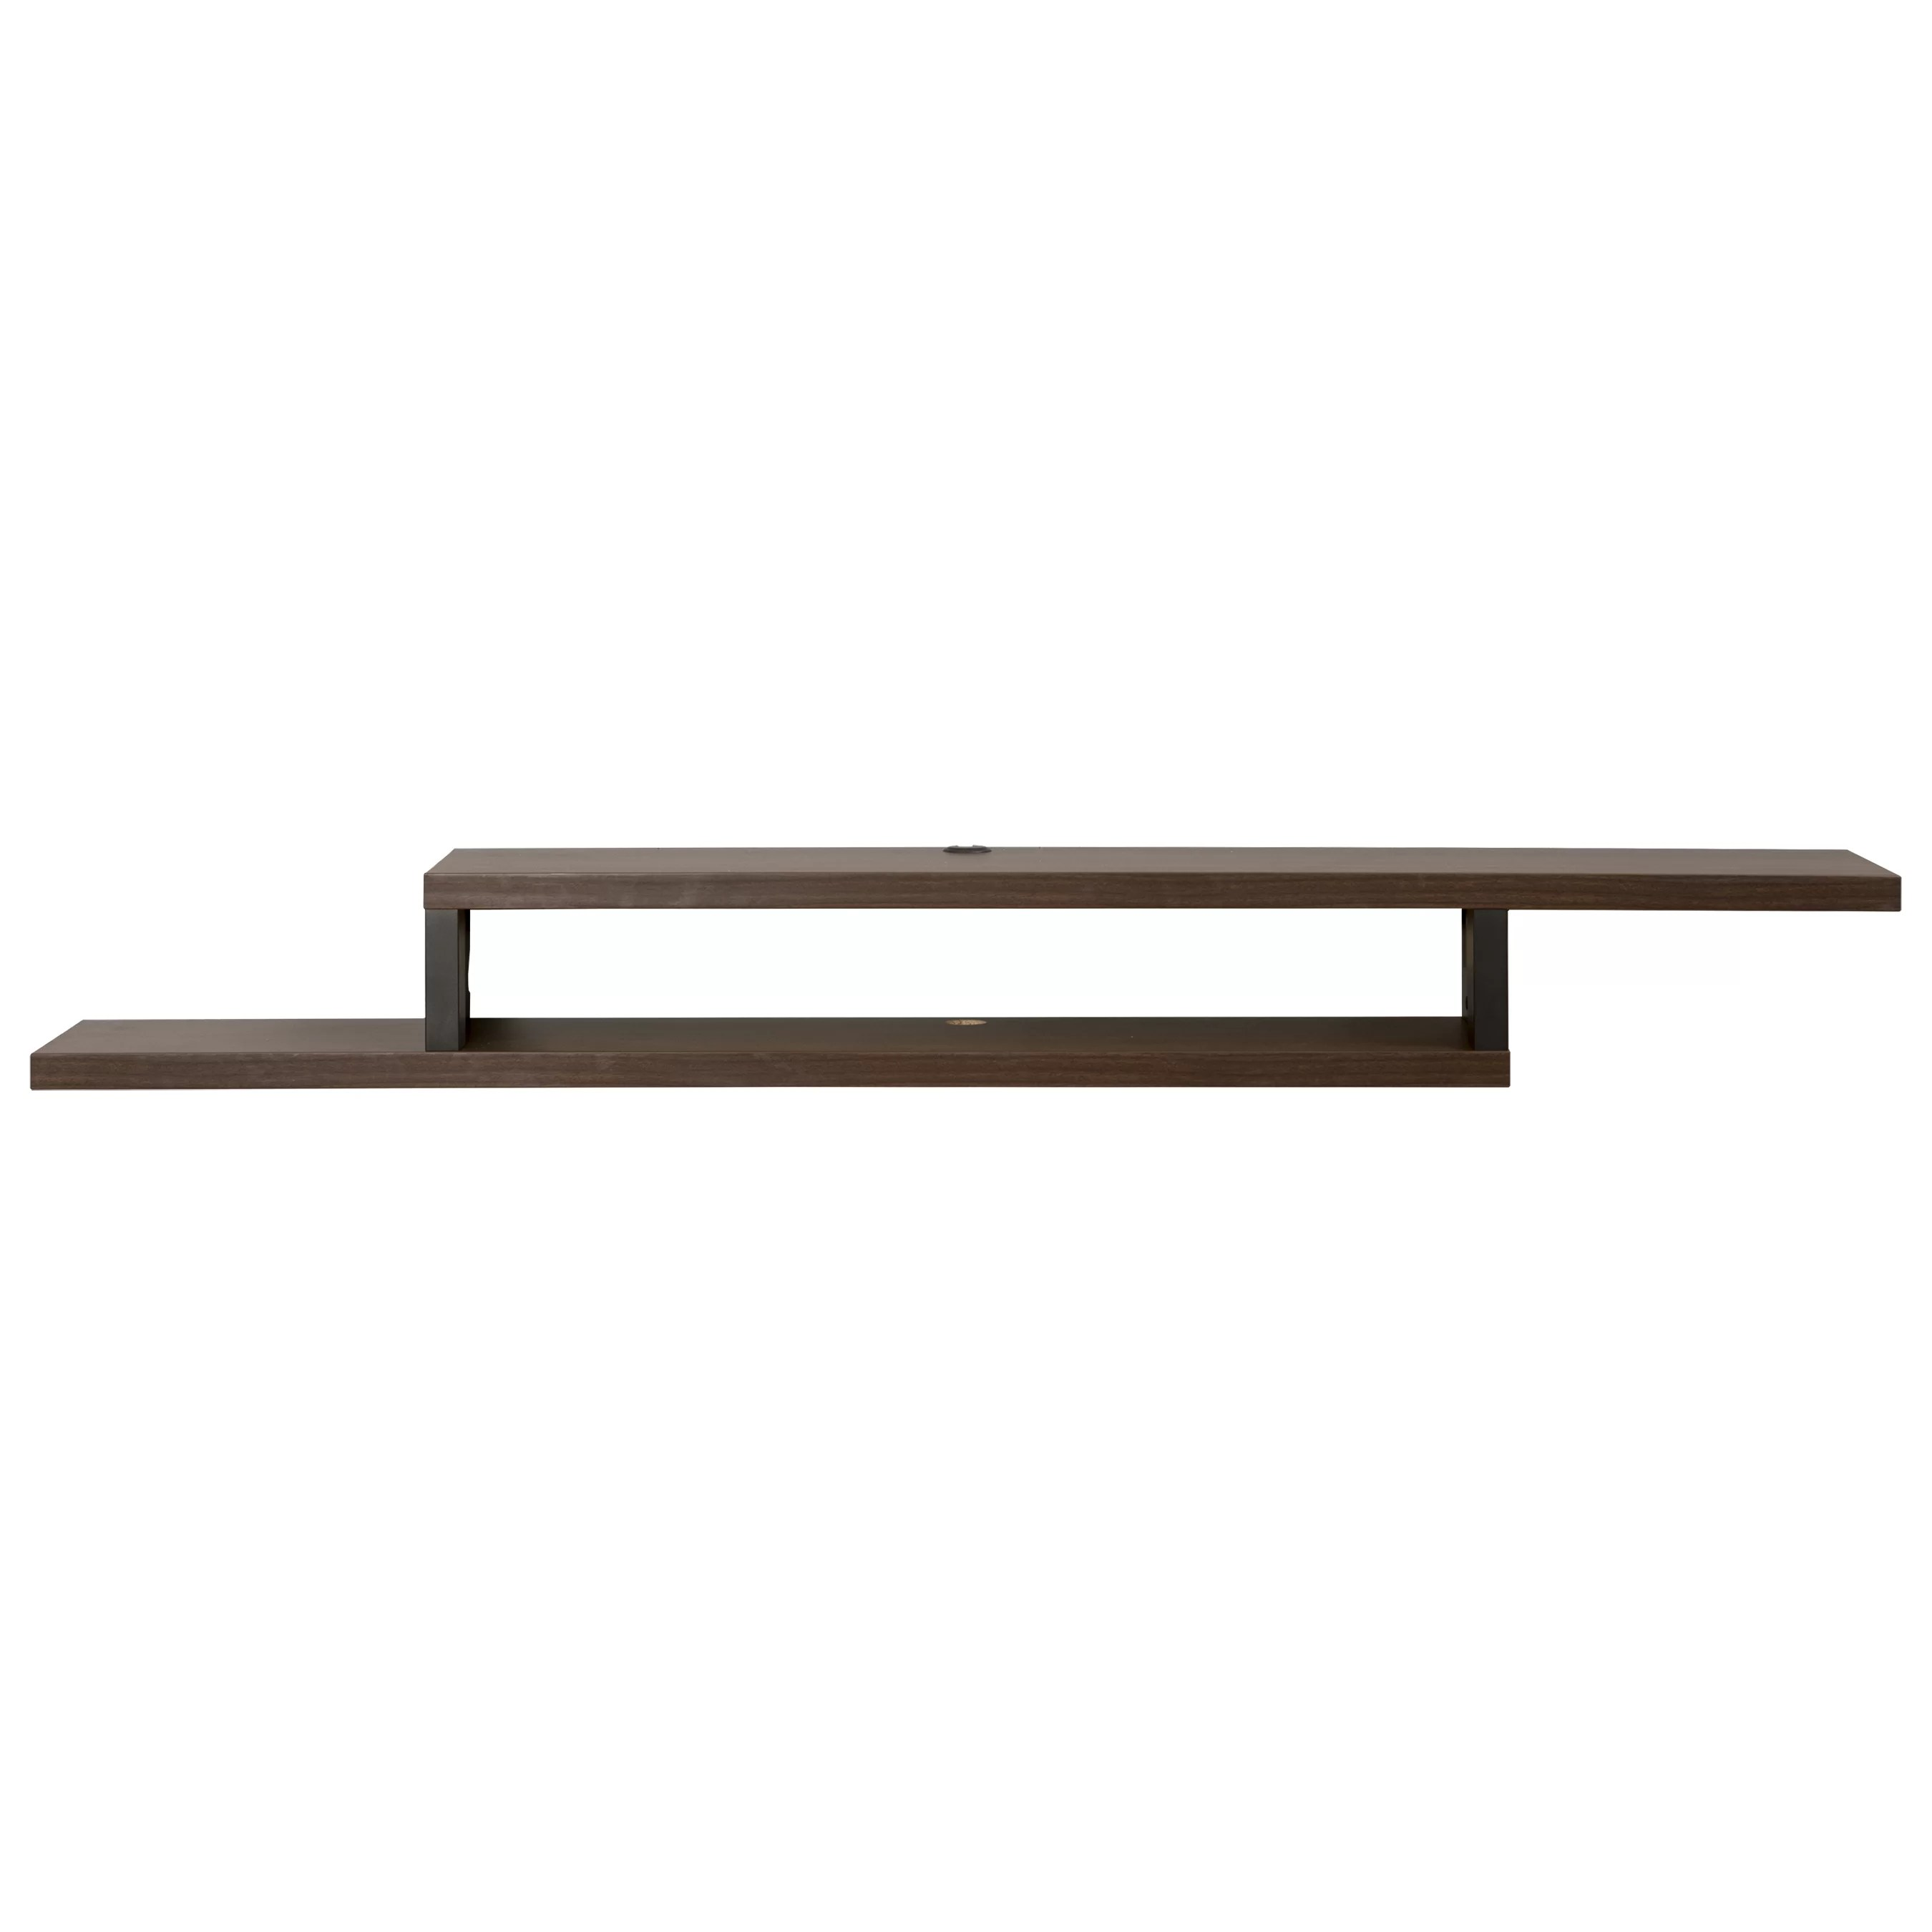 "Martin Home Furnishings Ascend 72"" Asymmetrical Wall"